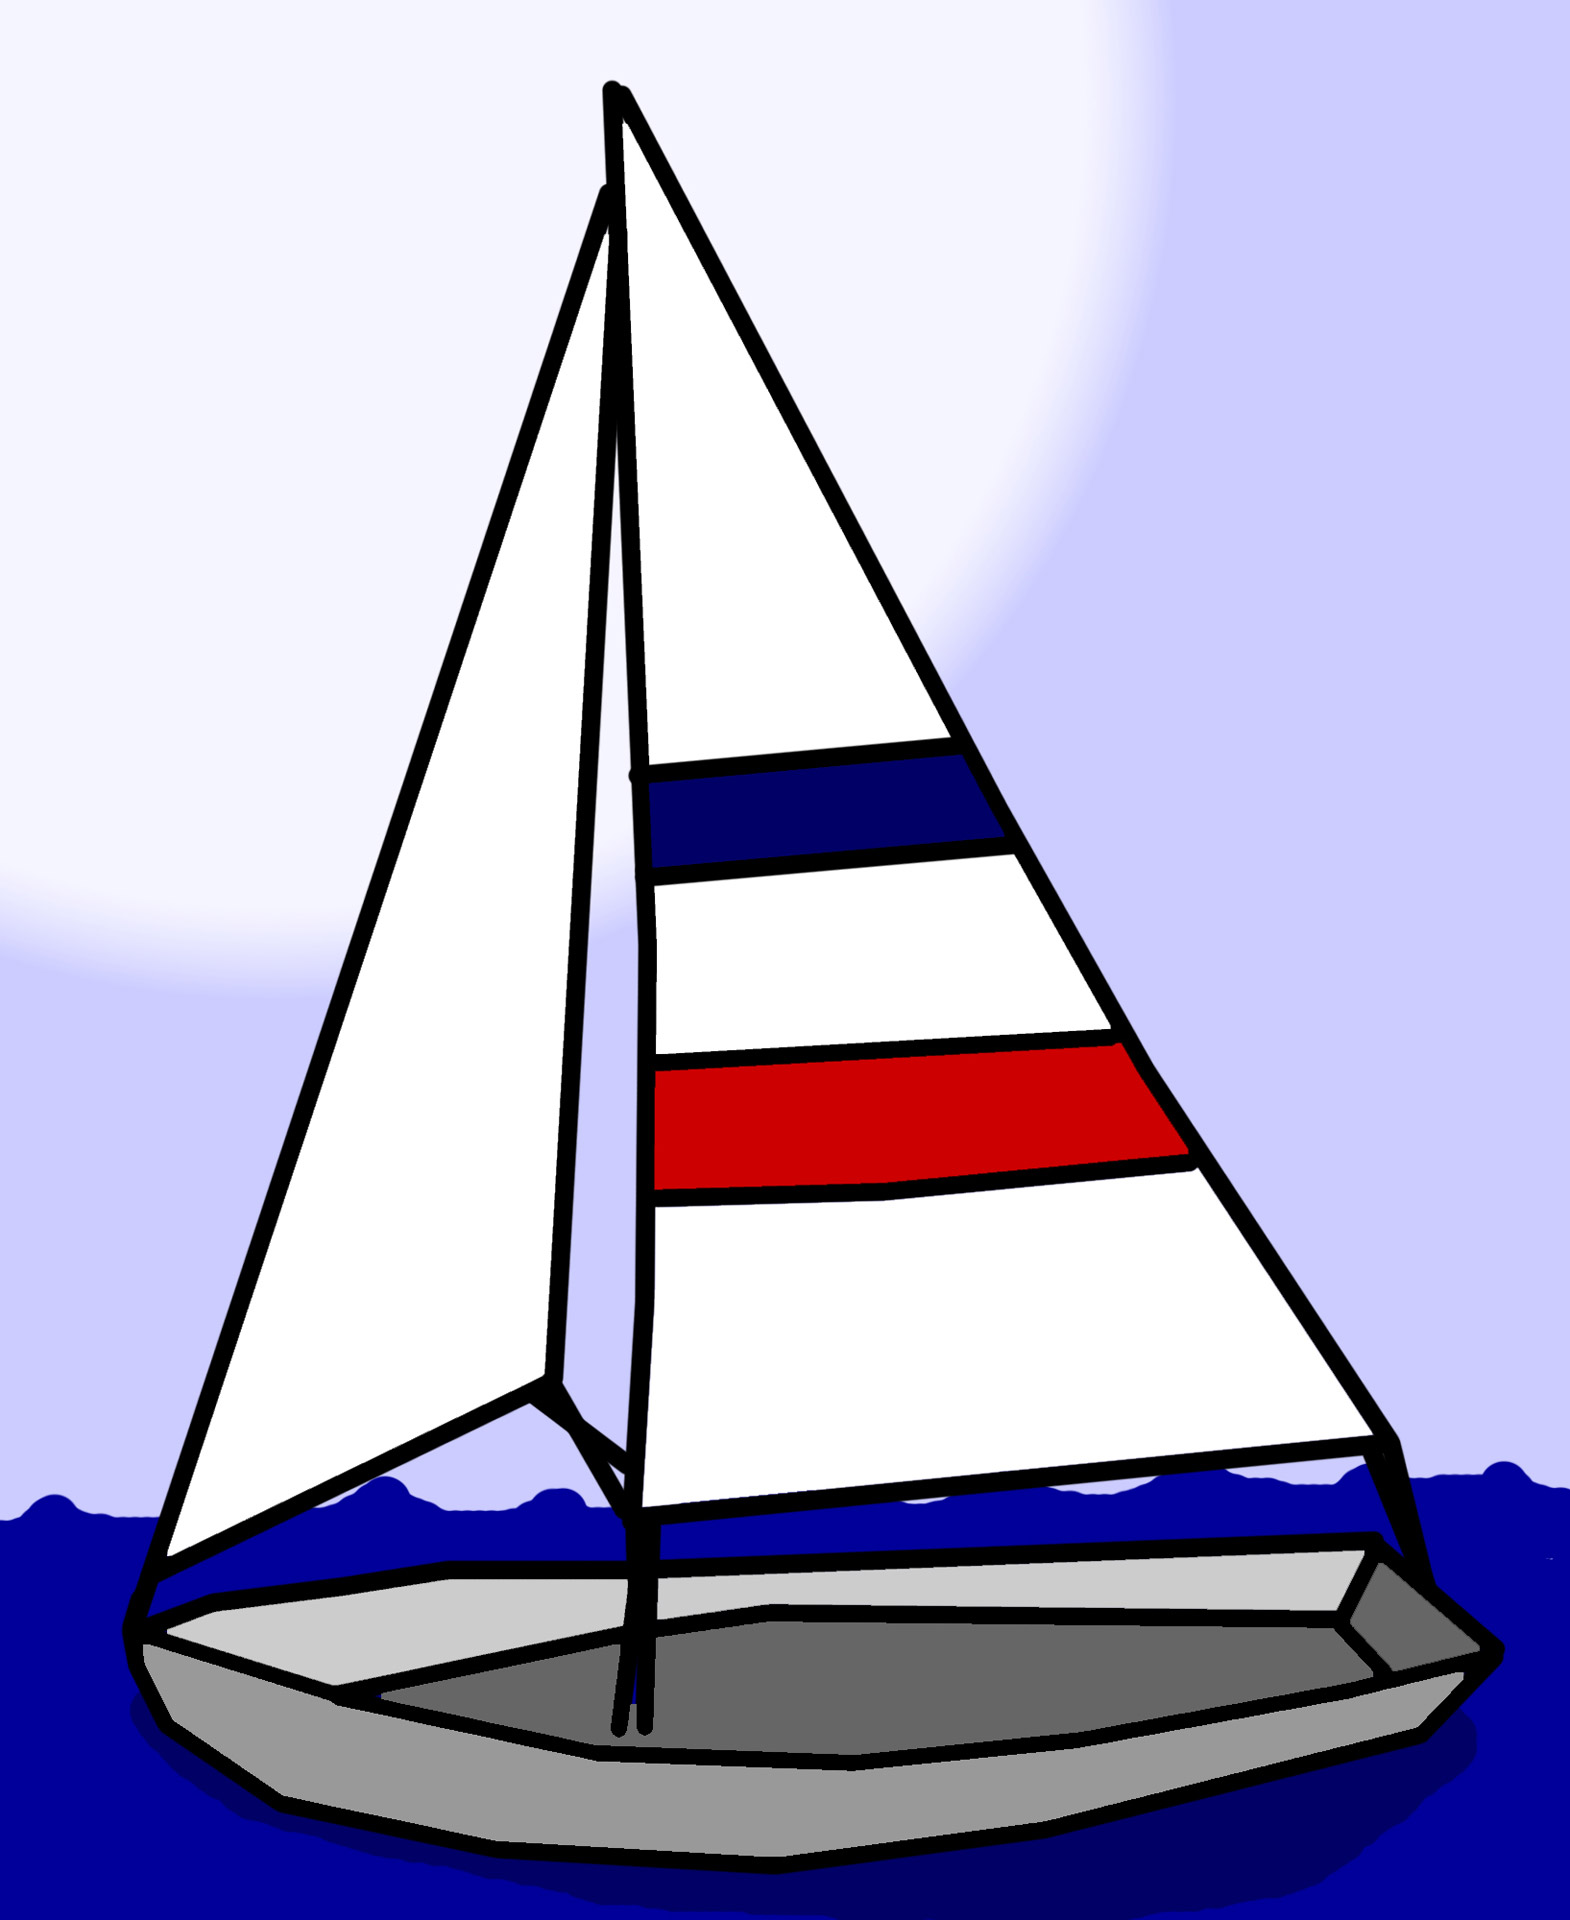 1570x1920 Boat Clipart, Suggestions For Boat Clipart, Download Boat Clipart